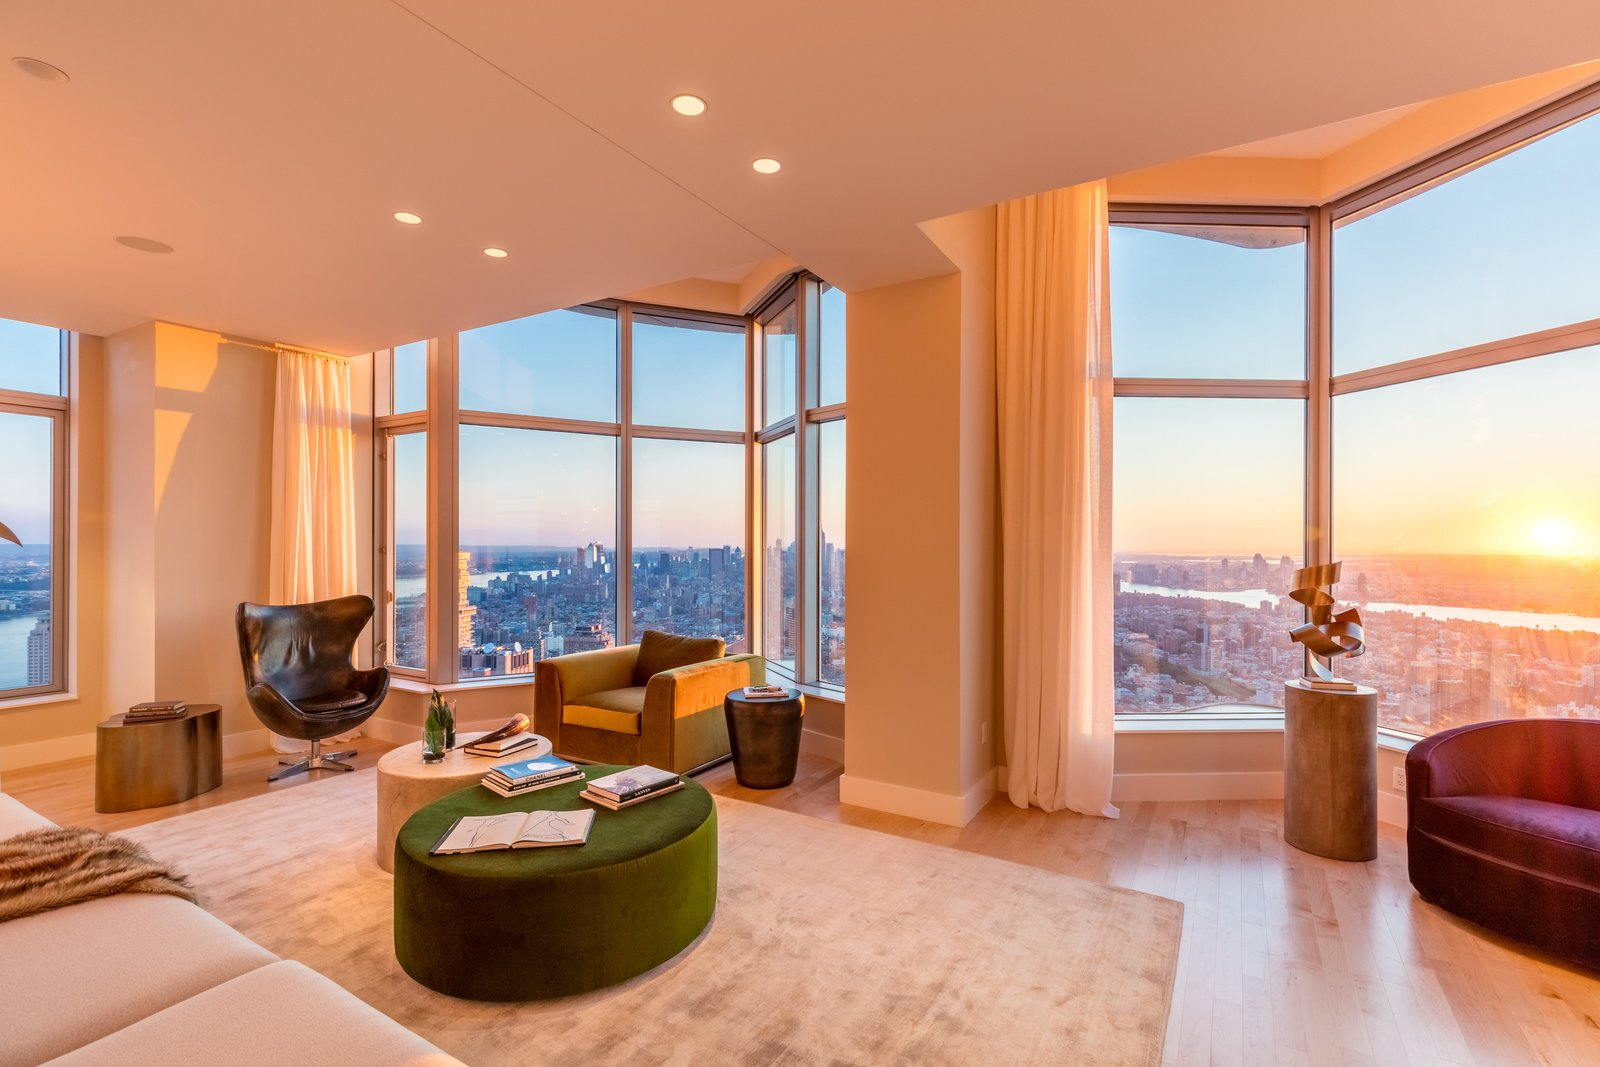 Photo 9 of 9 in Tour This Frank Gehry-Designed Penthouse in NYC That's Back on the Market